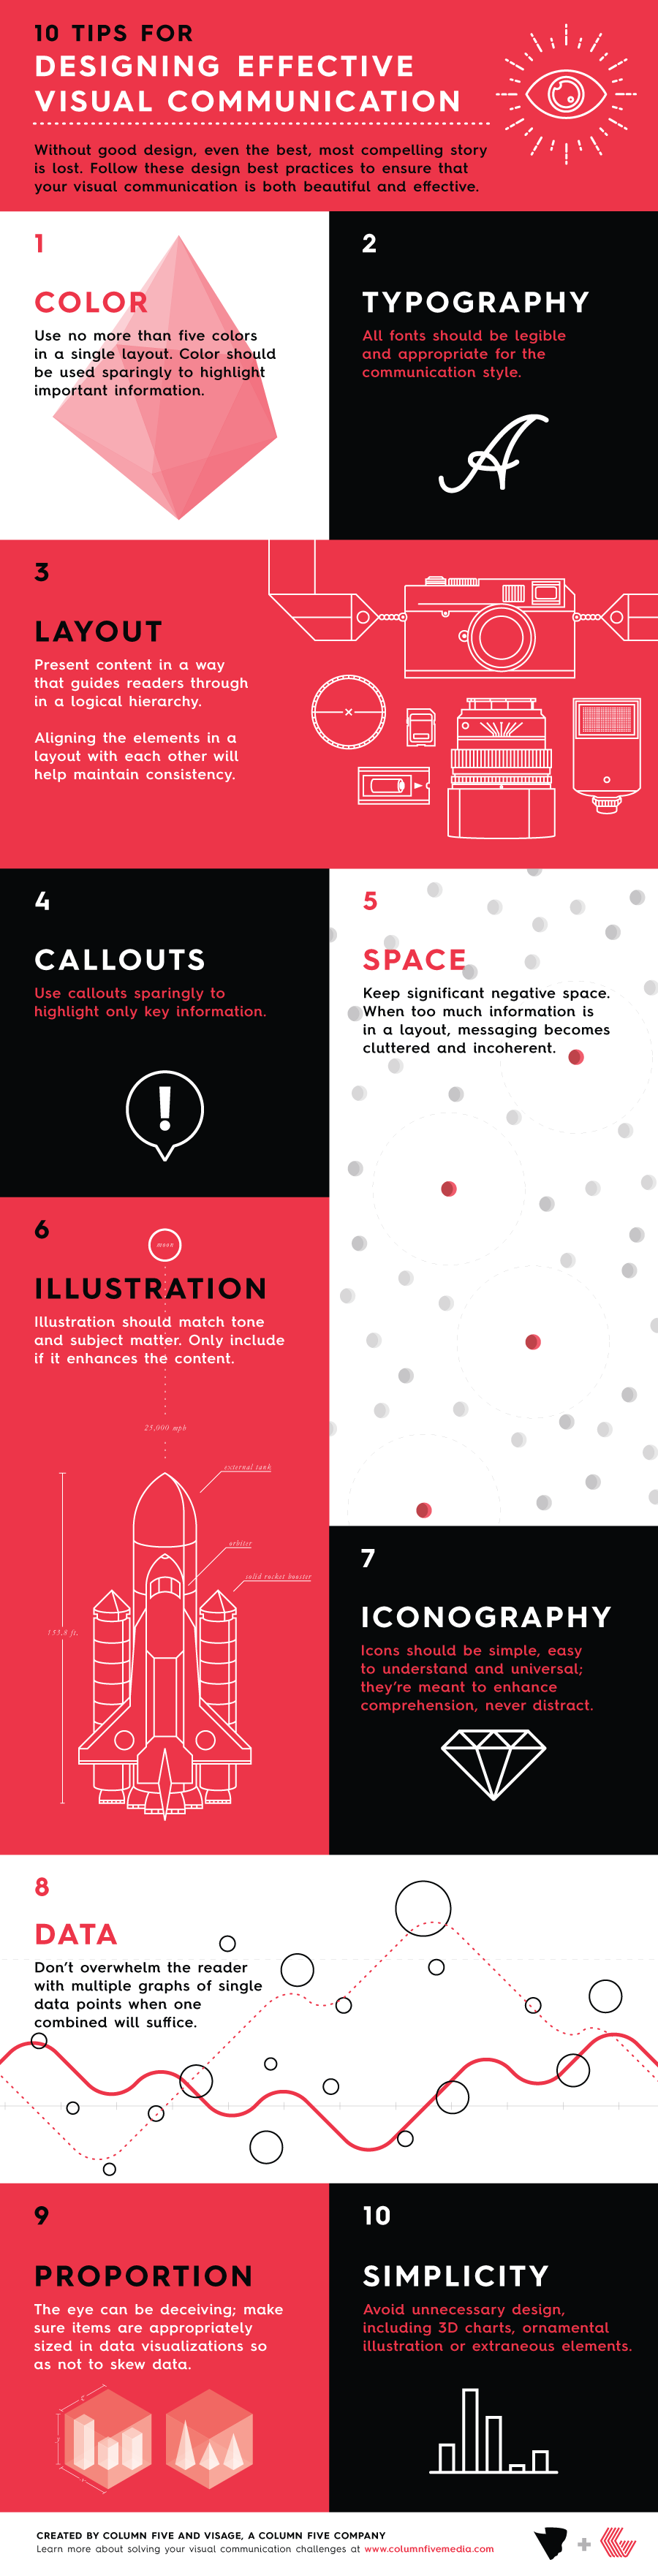 10 Easy Design Tips to Improve Your Visual Content